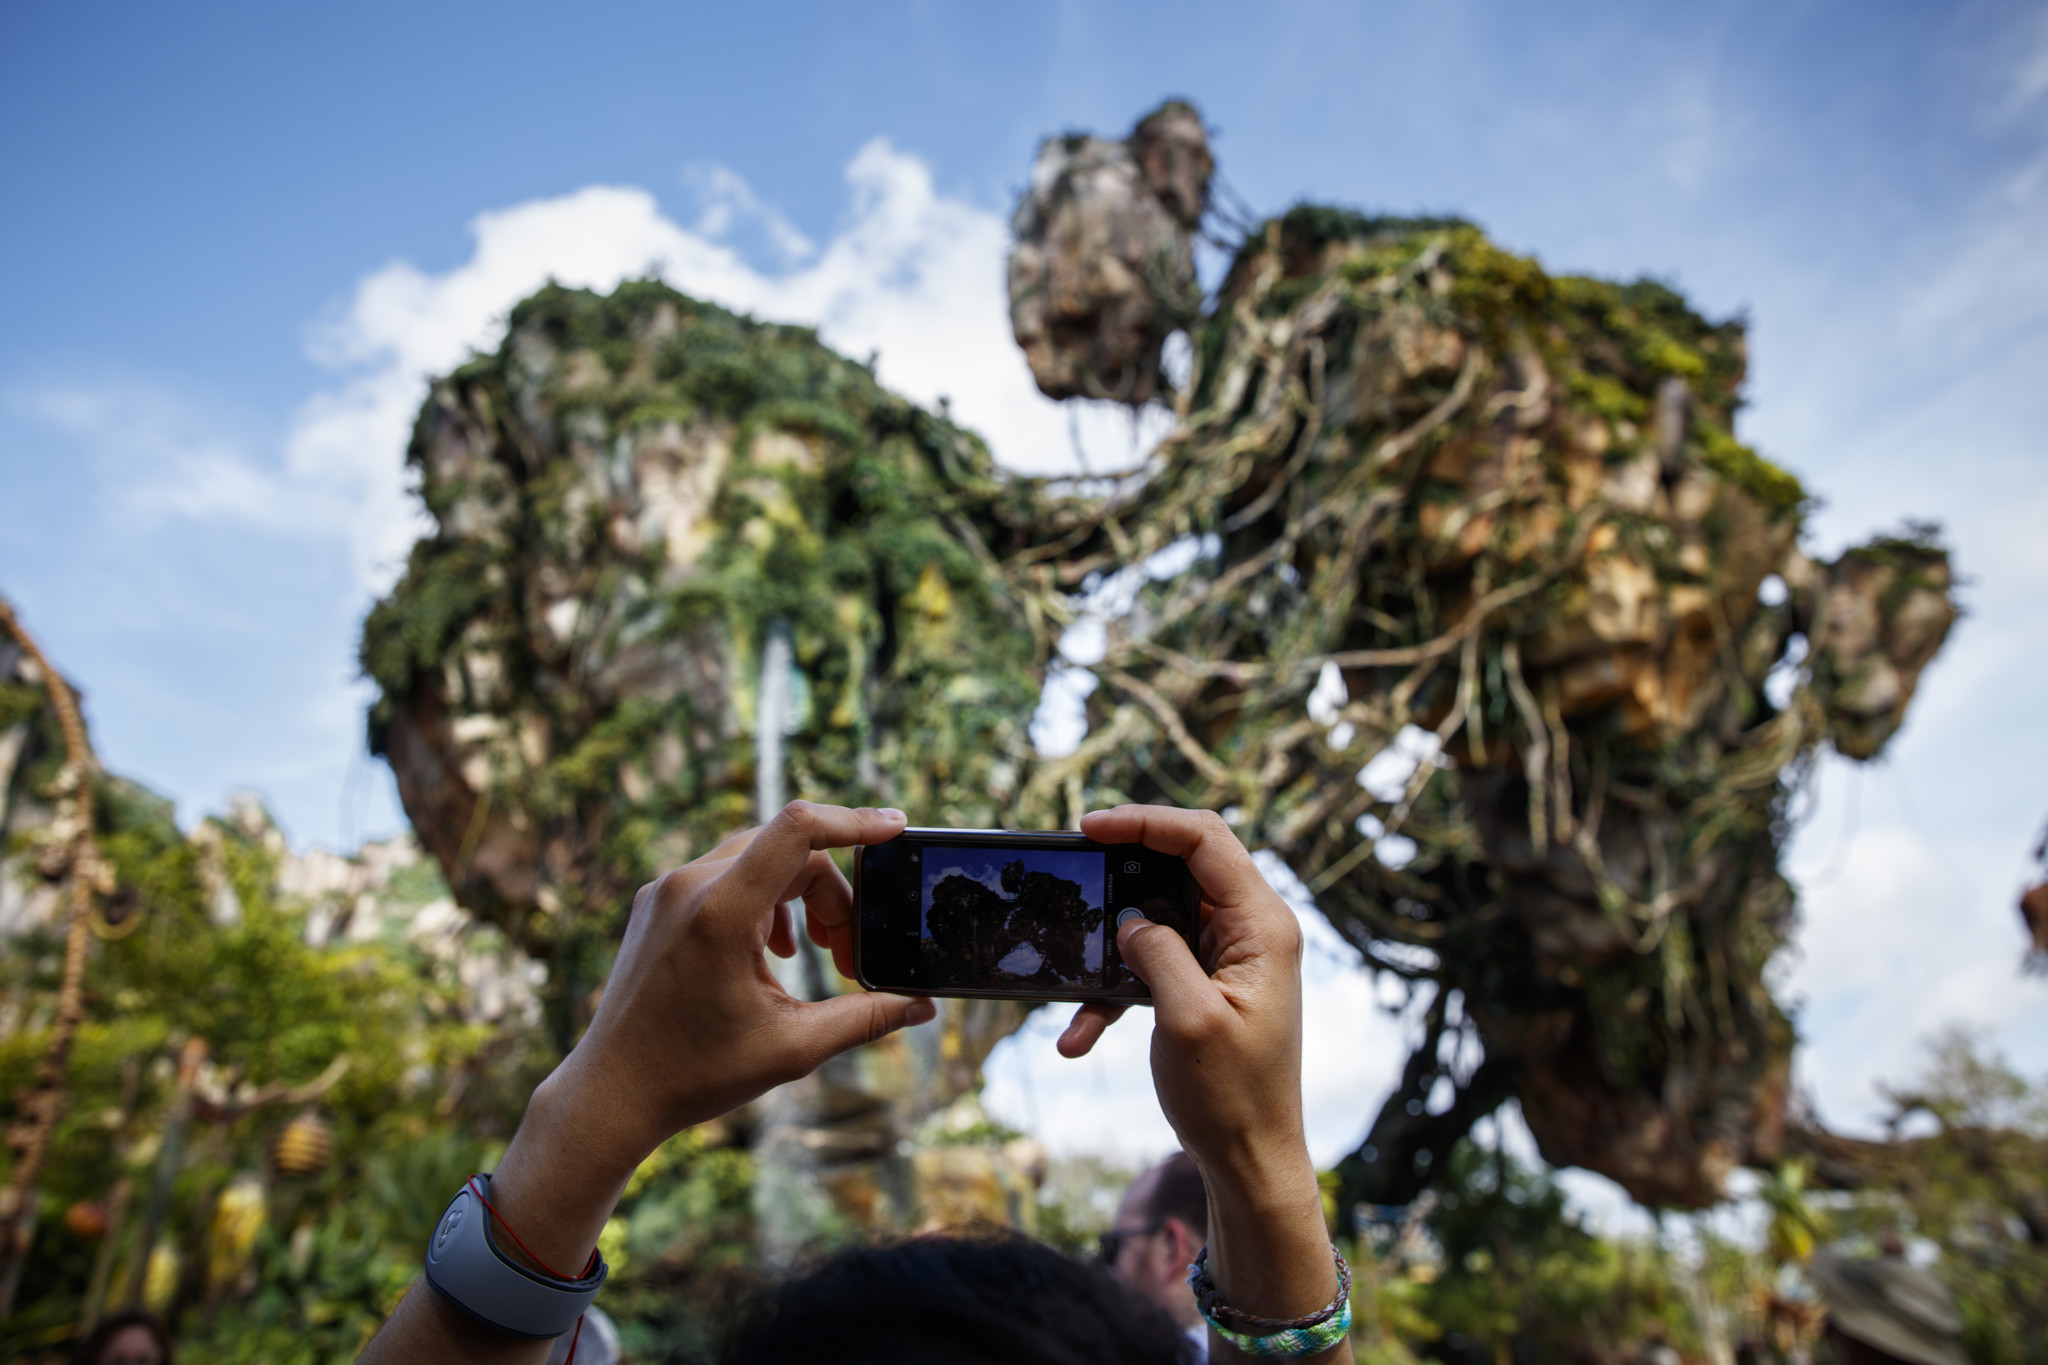 A visitor takes a photo of the floating mountains of Pandora. Click to see more photos from inside Disney's new